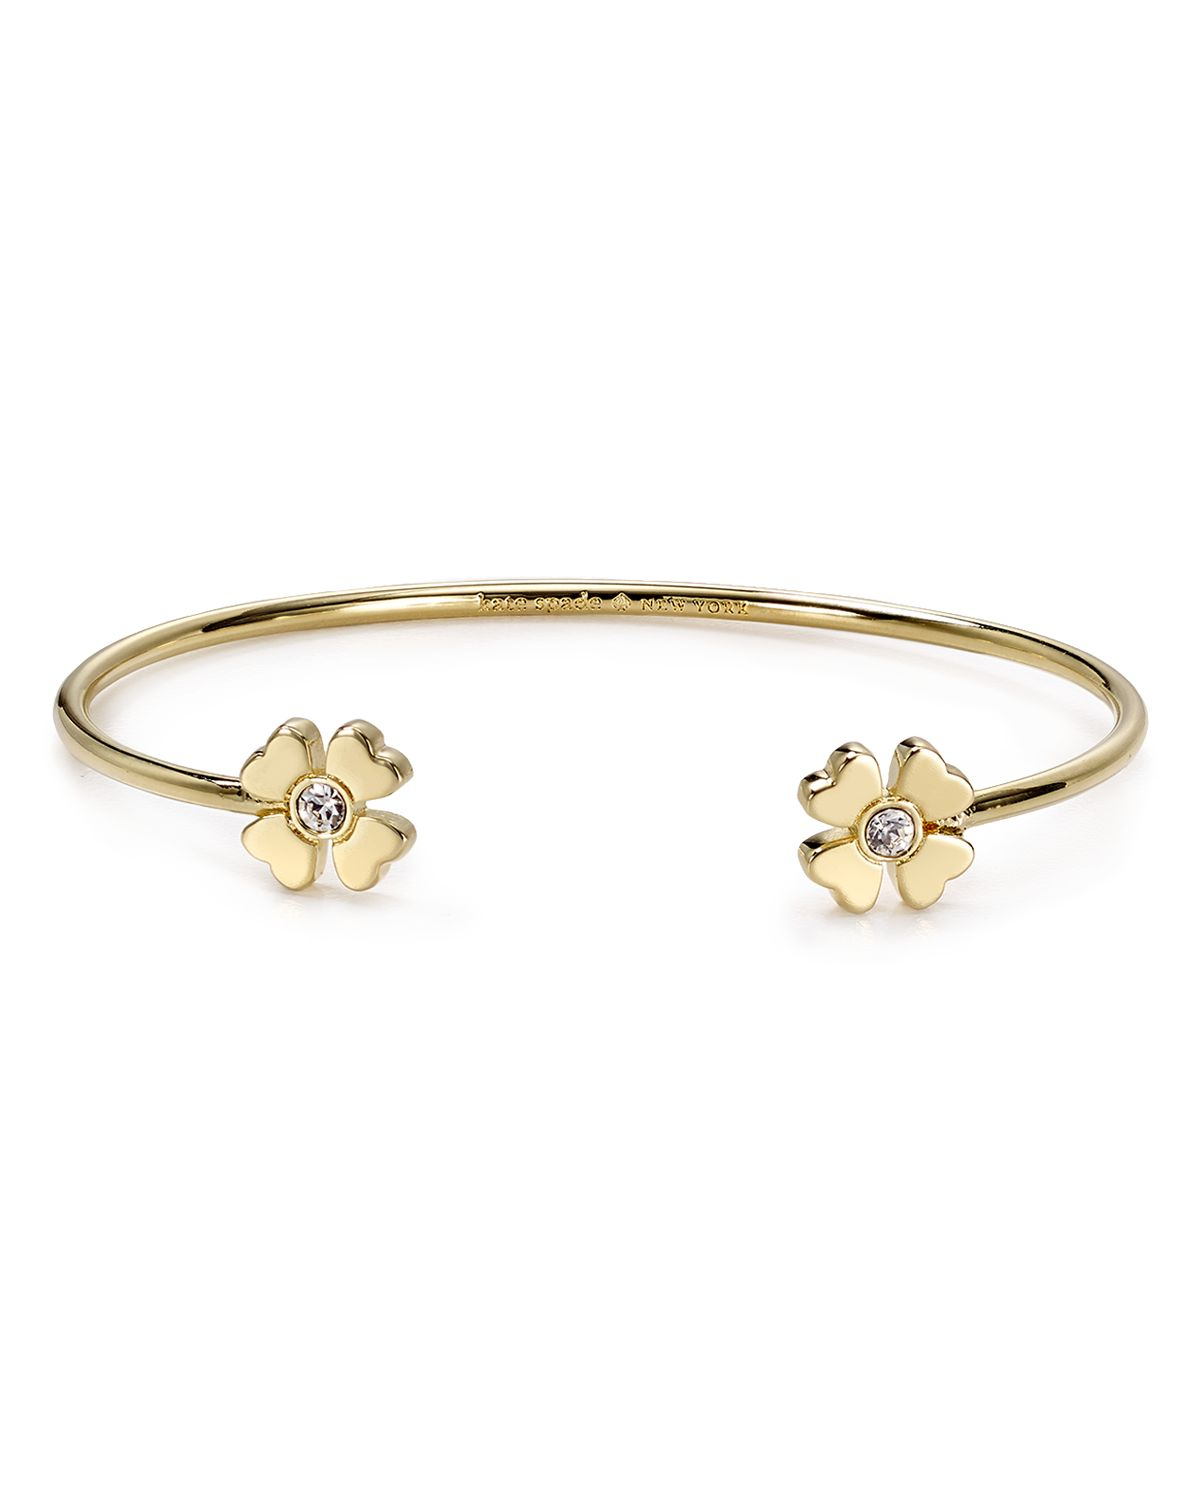 Favorite Lyst - Kate Spade New York Four Leaf Clover Bangle in Metallic DH62